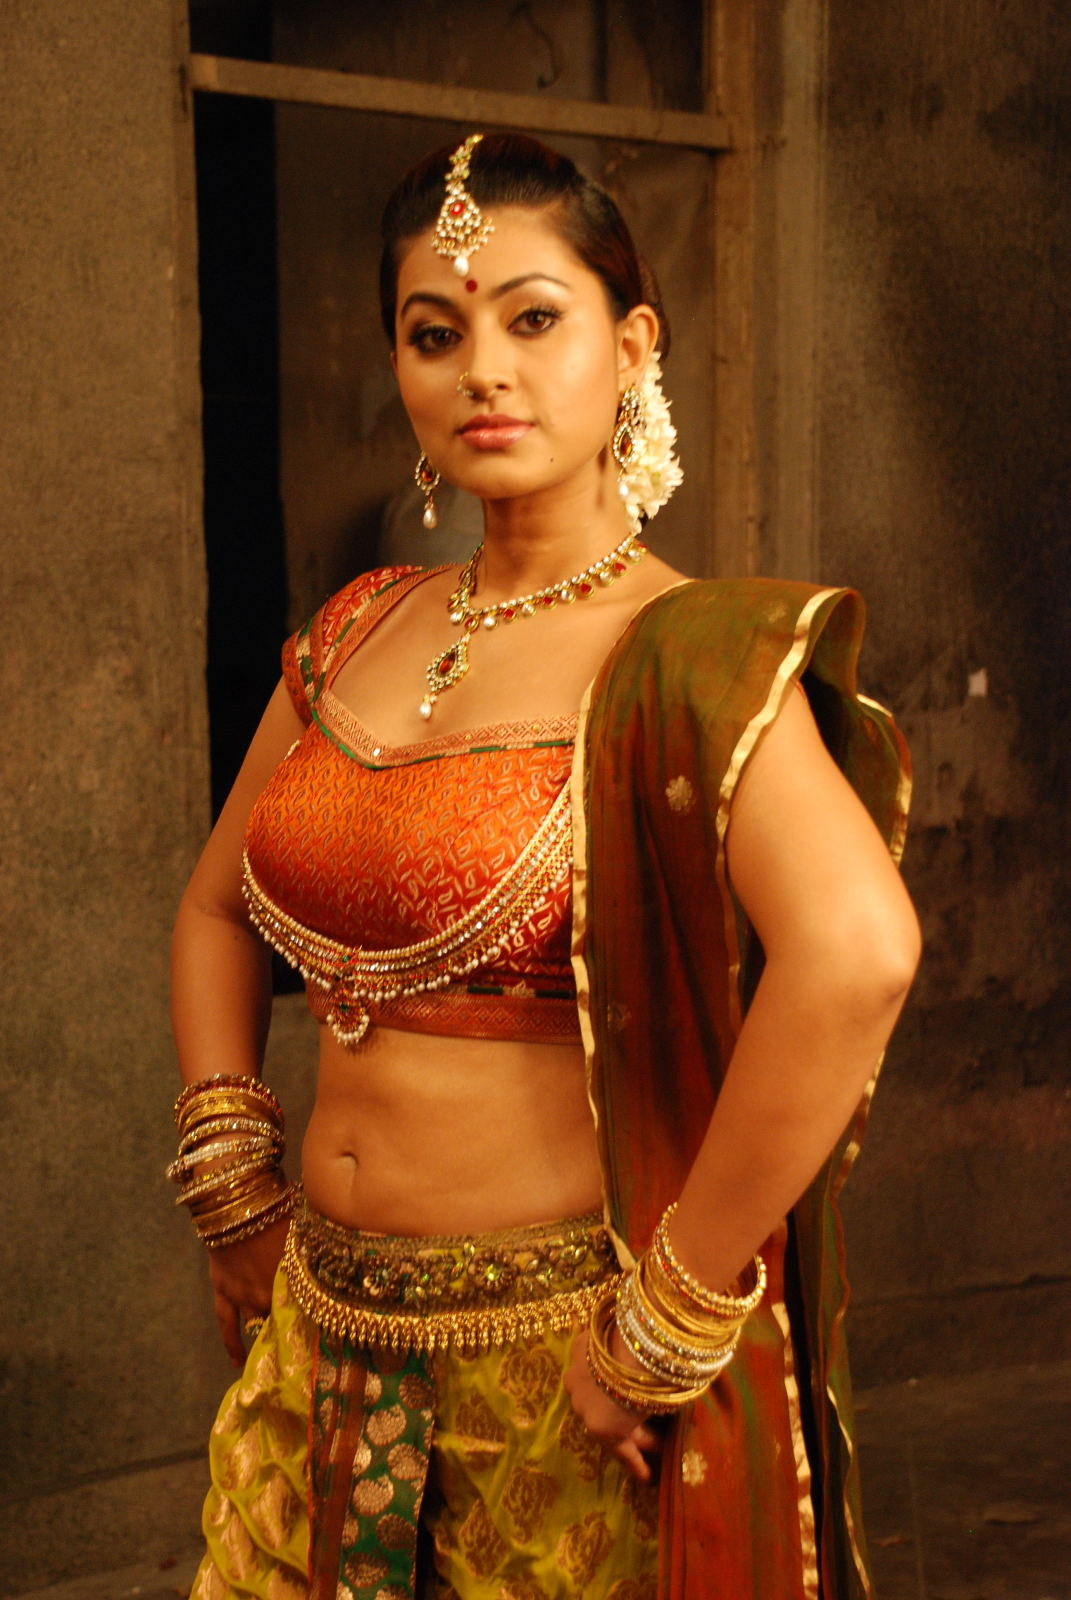 Tamil Actress Gorgeous Sneha Beautiful Hot Stills Ponnar -5215